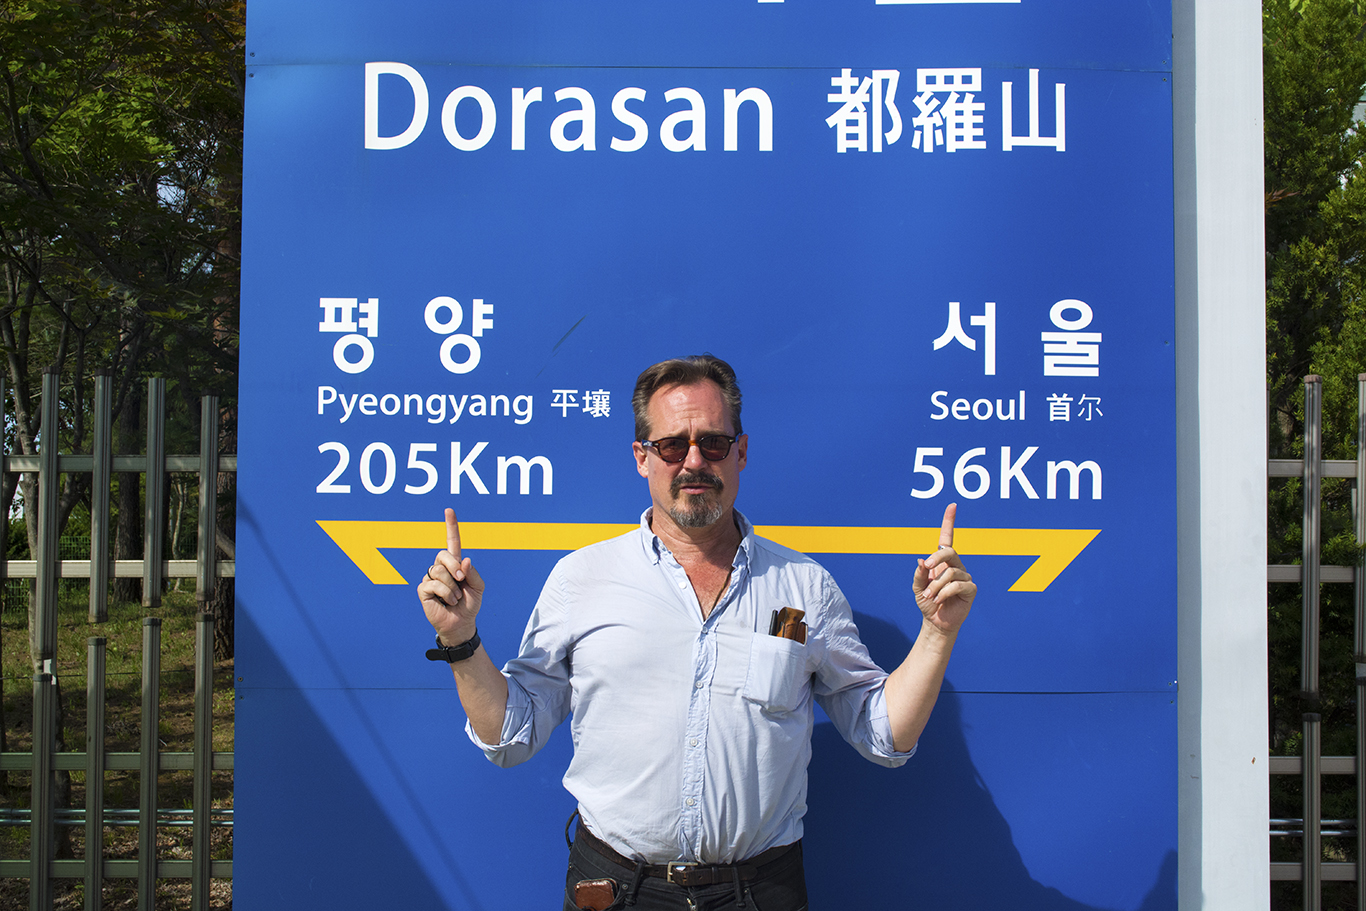 Professor Philip Baldwin from the Department of Theatre Arts at Stony Brook University poses in front of a sign at Dorasan Station on the South Korean side of the Military Demarcation Line. (CHRISTOPHER CAMERON/THE STATESMAN)